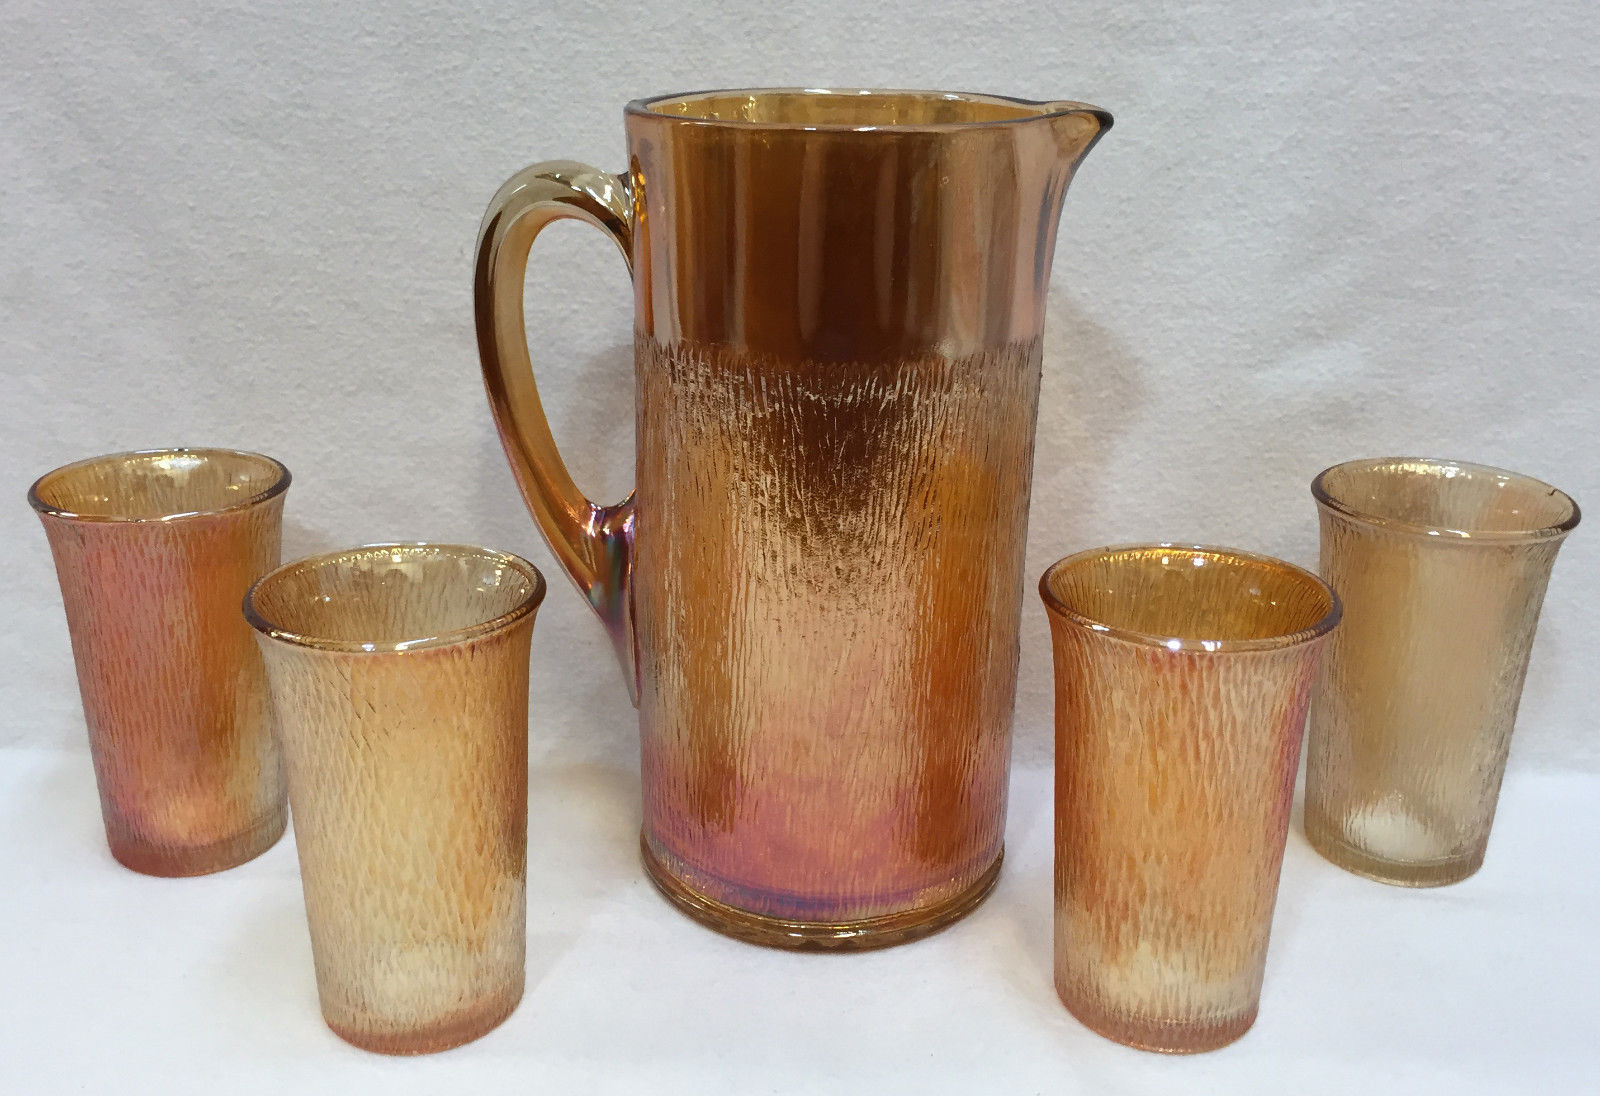 Primary image for Pitcher & Glass Set Marigold Amber Carnival Glasses Birch Pattern Imperial 5 pcs